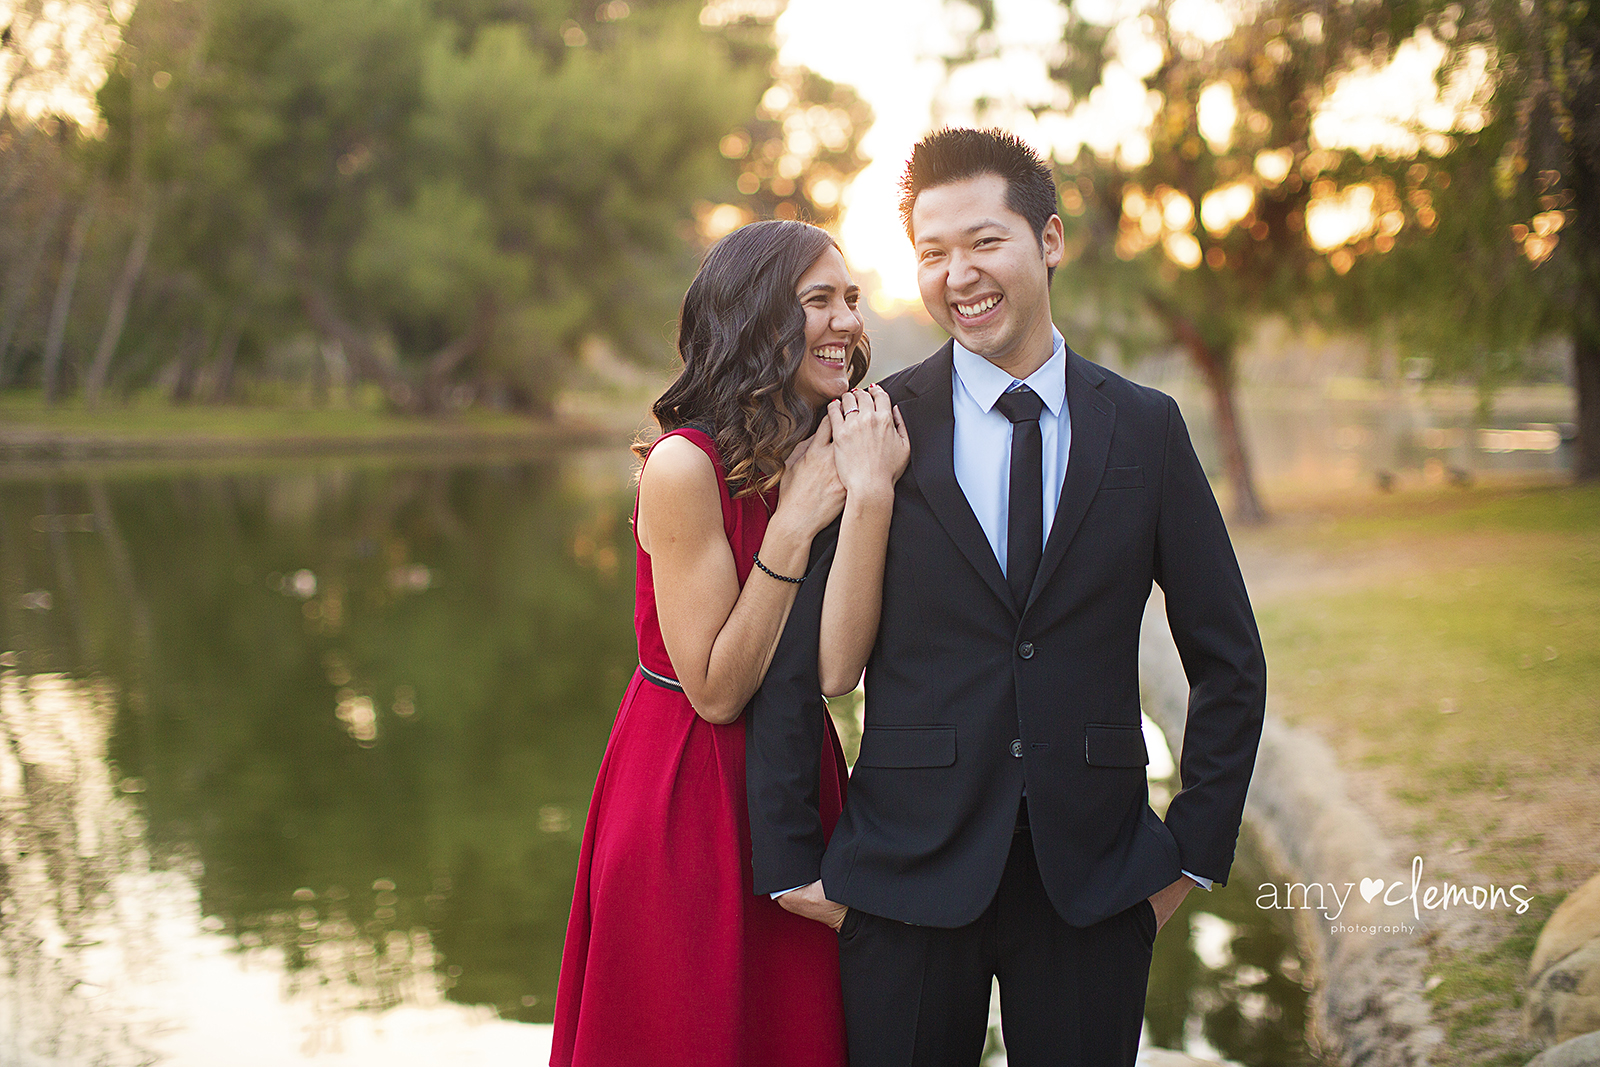 How I Met Your Mother inspired Engagement Session | Amy Clemons Photography | Southern CA Photographer